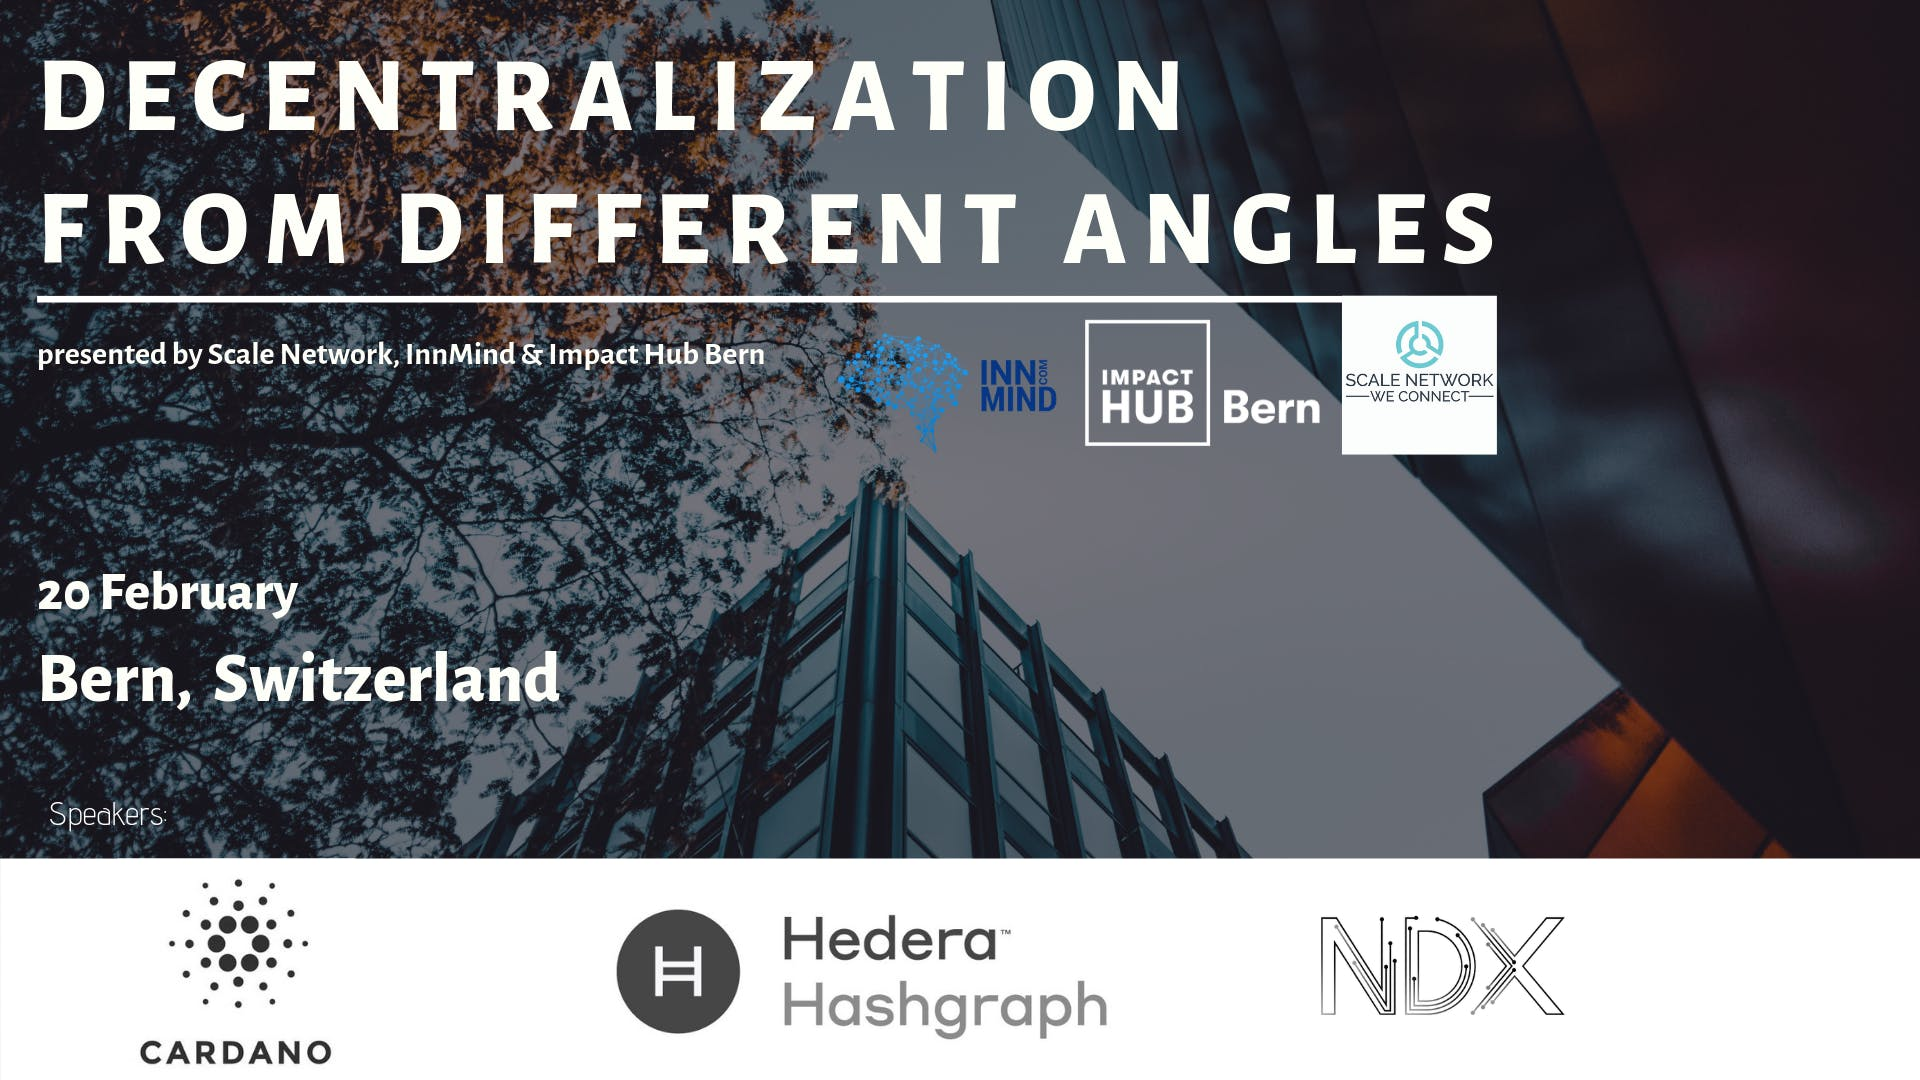 BLOCKCHAIN TRIBE: Decentralization from different angles